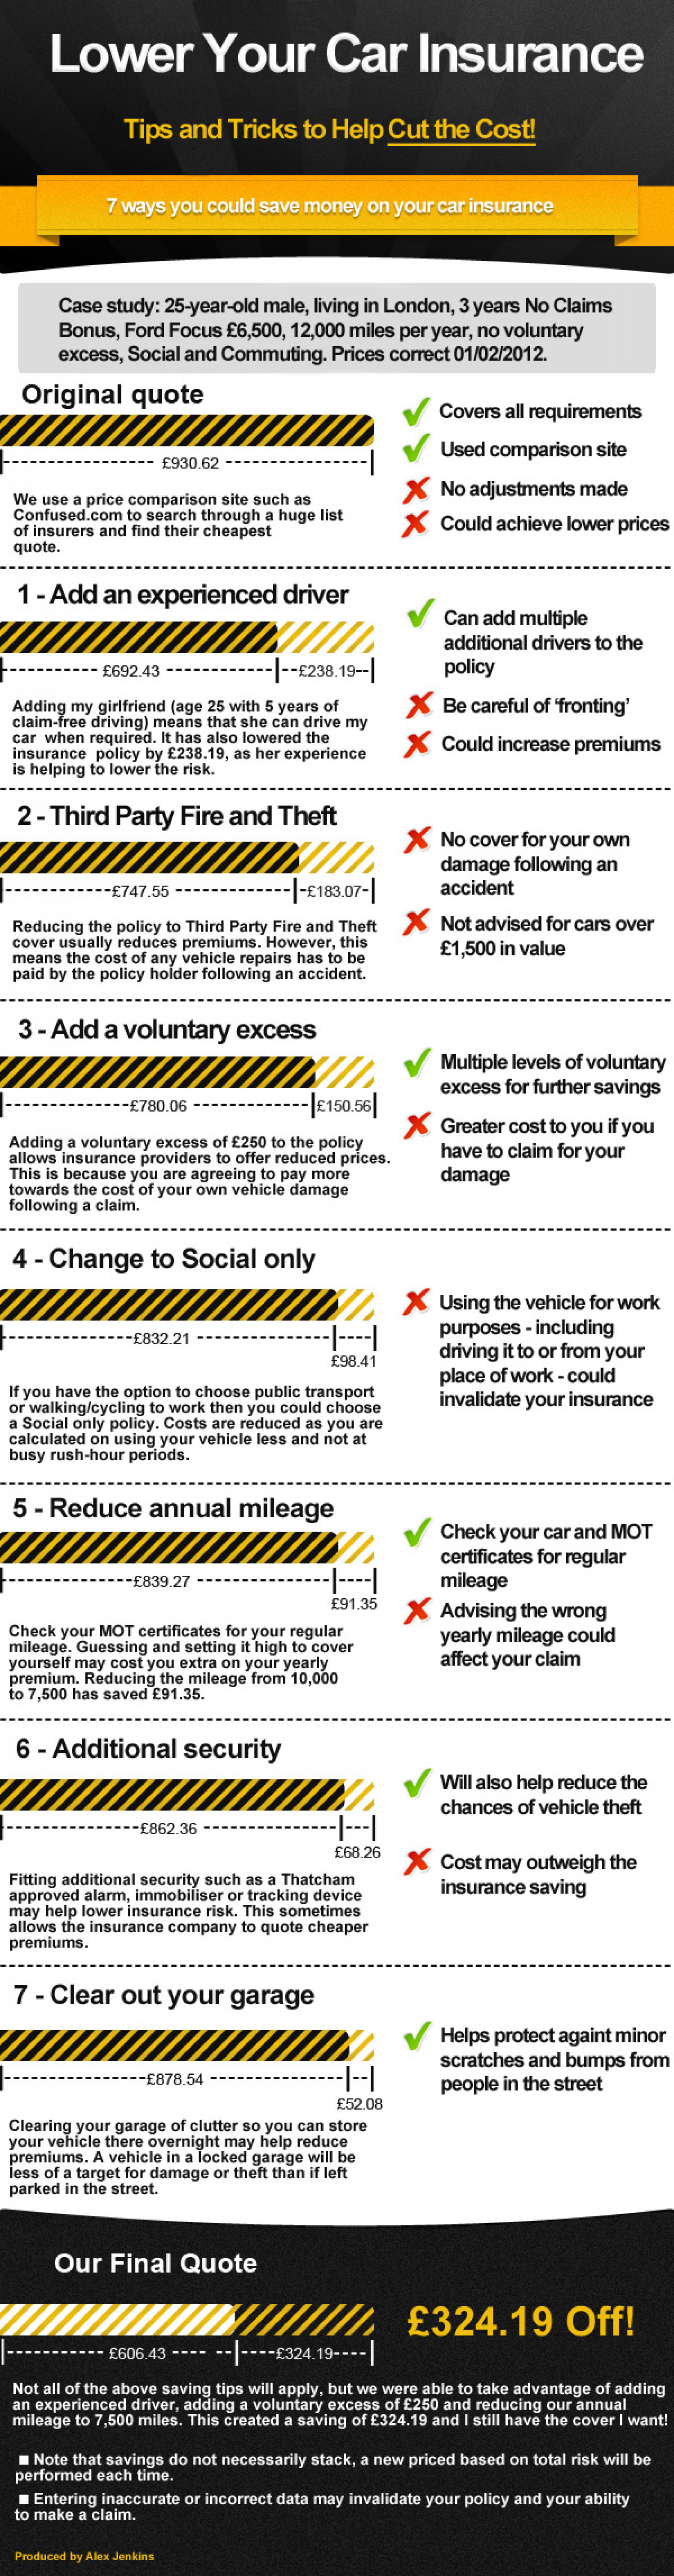 Lower Your Car Insurance Infographic